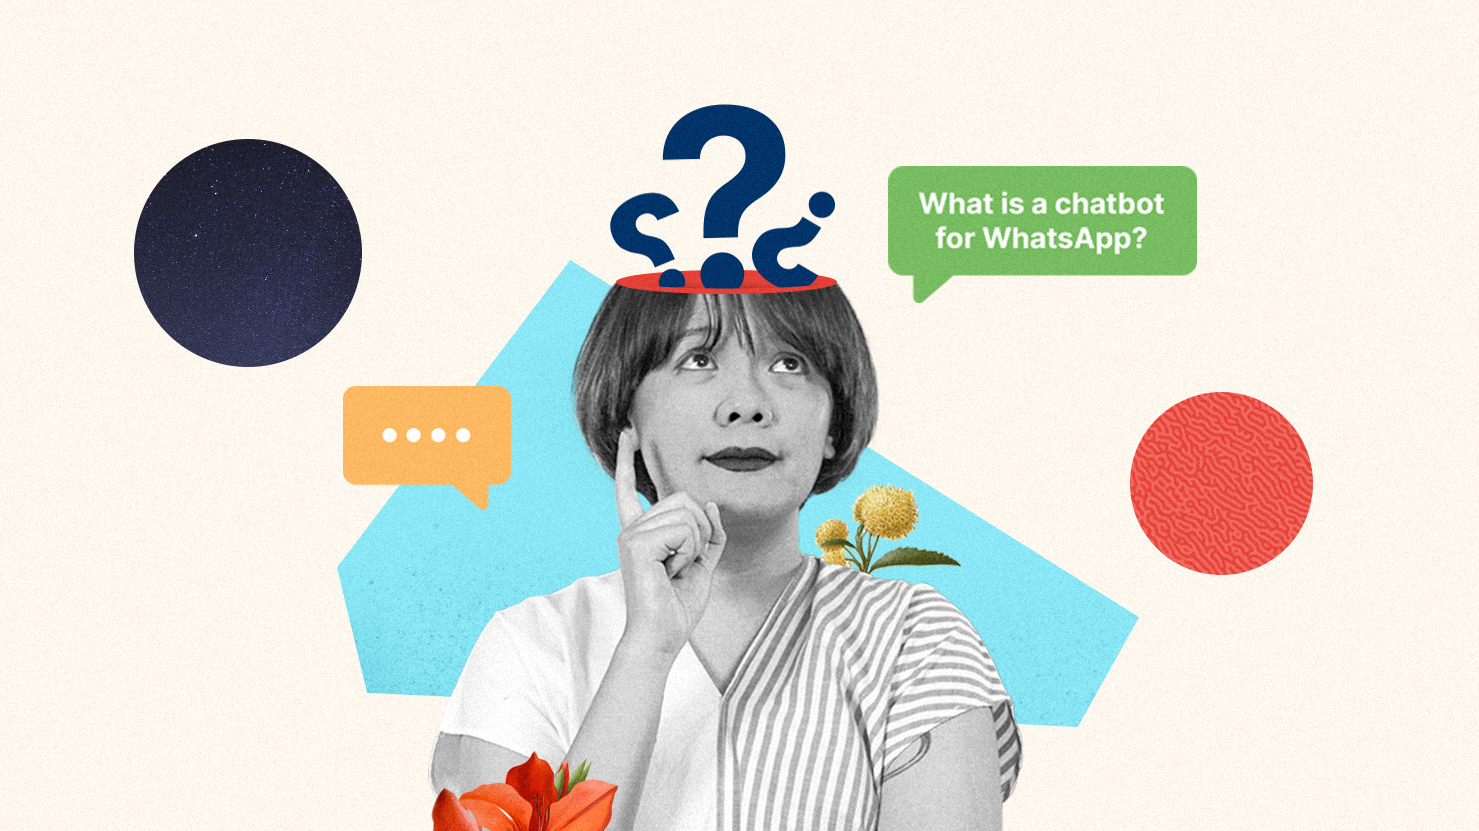 With a lot of businesses utilizing chatbot for their WhatsApp accounts, we will discuss about what exactly is chatbot for WhatsApp (Photo and Illustration by Kata.ai)